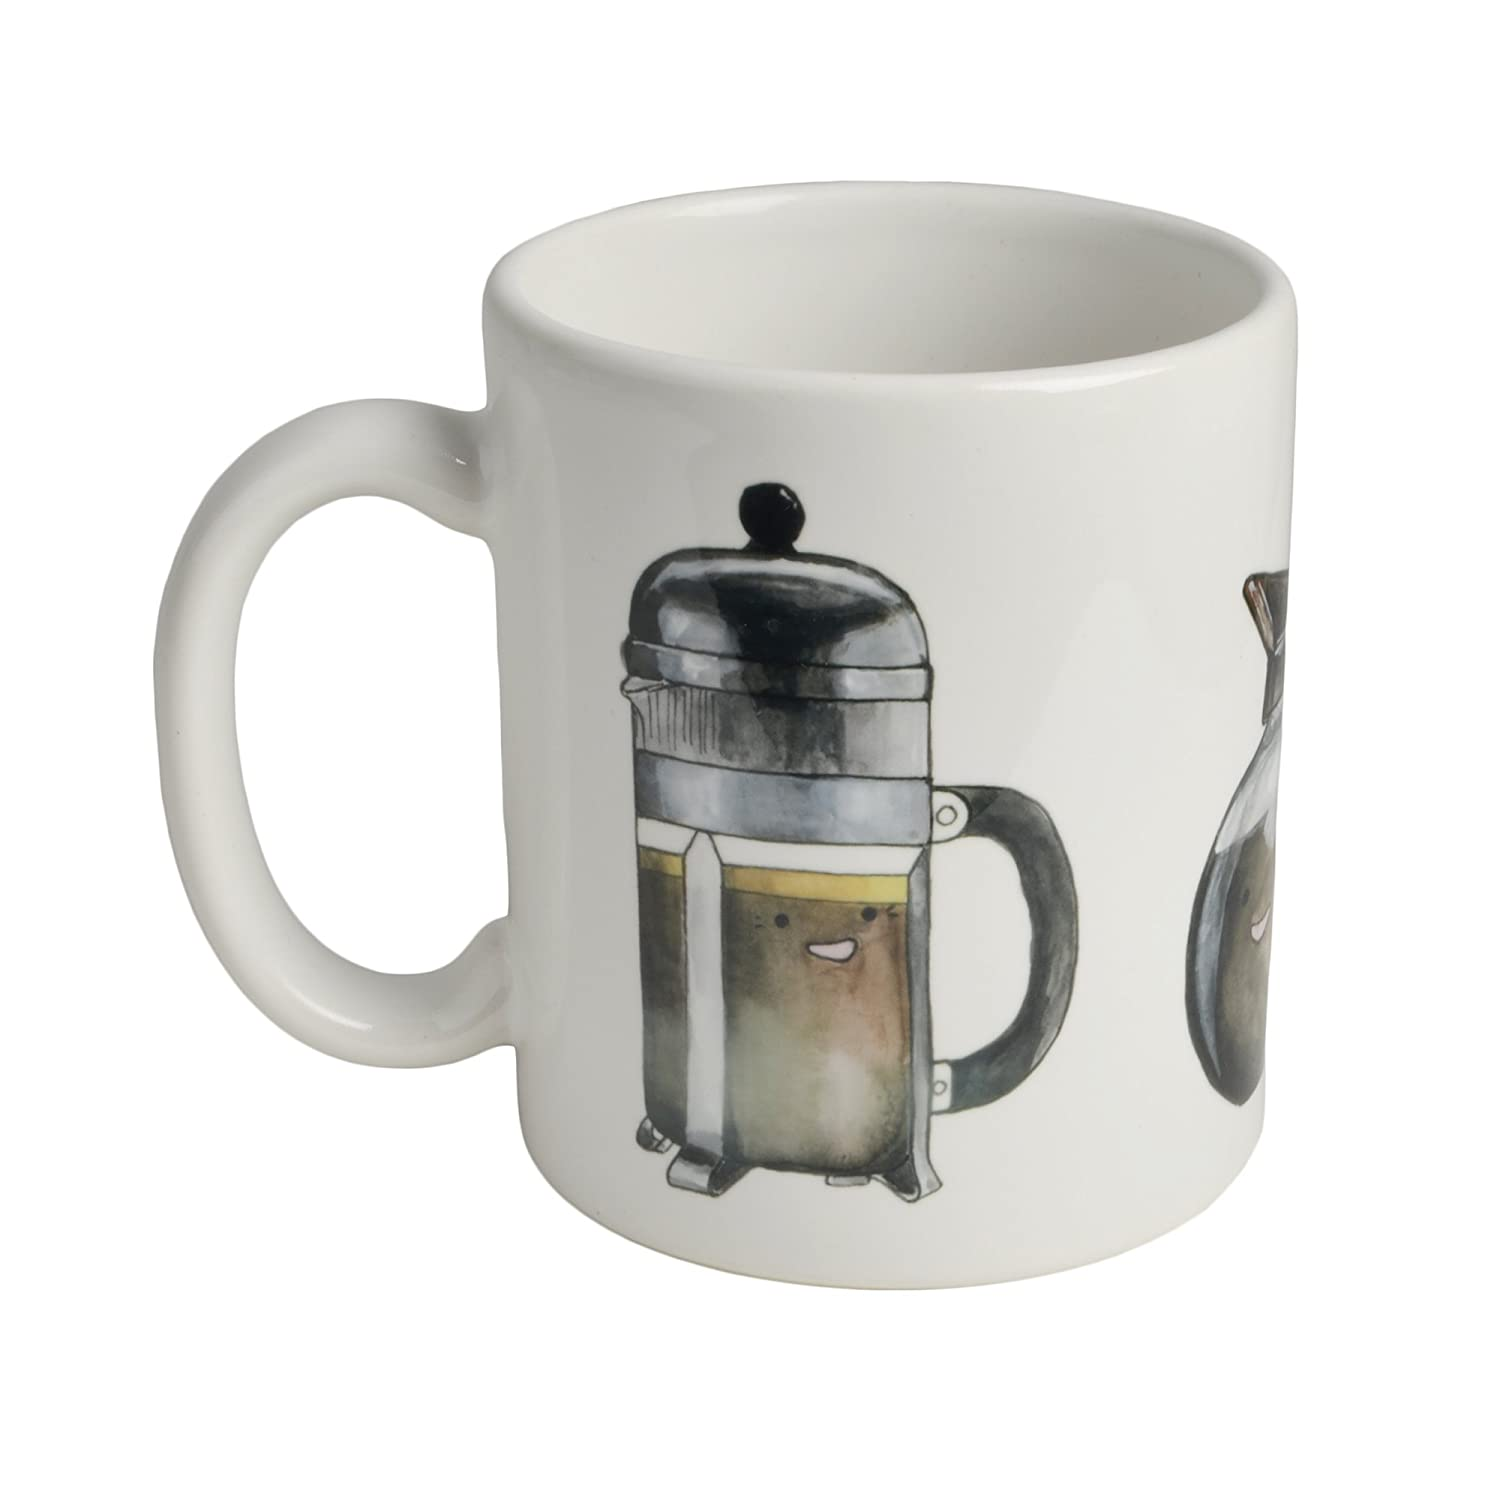 Cats in Pants Smiling Coffee Pots Mug, Made in the USA